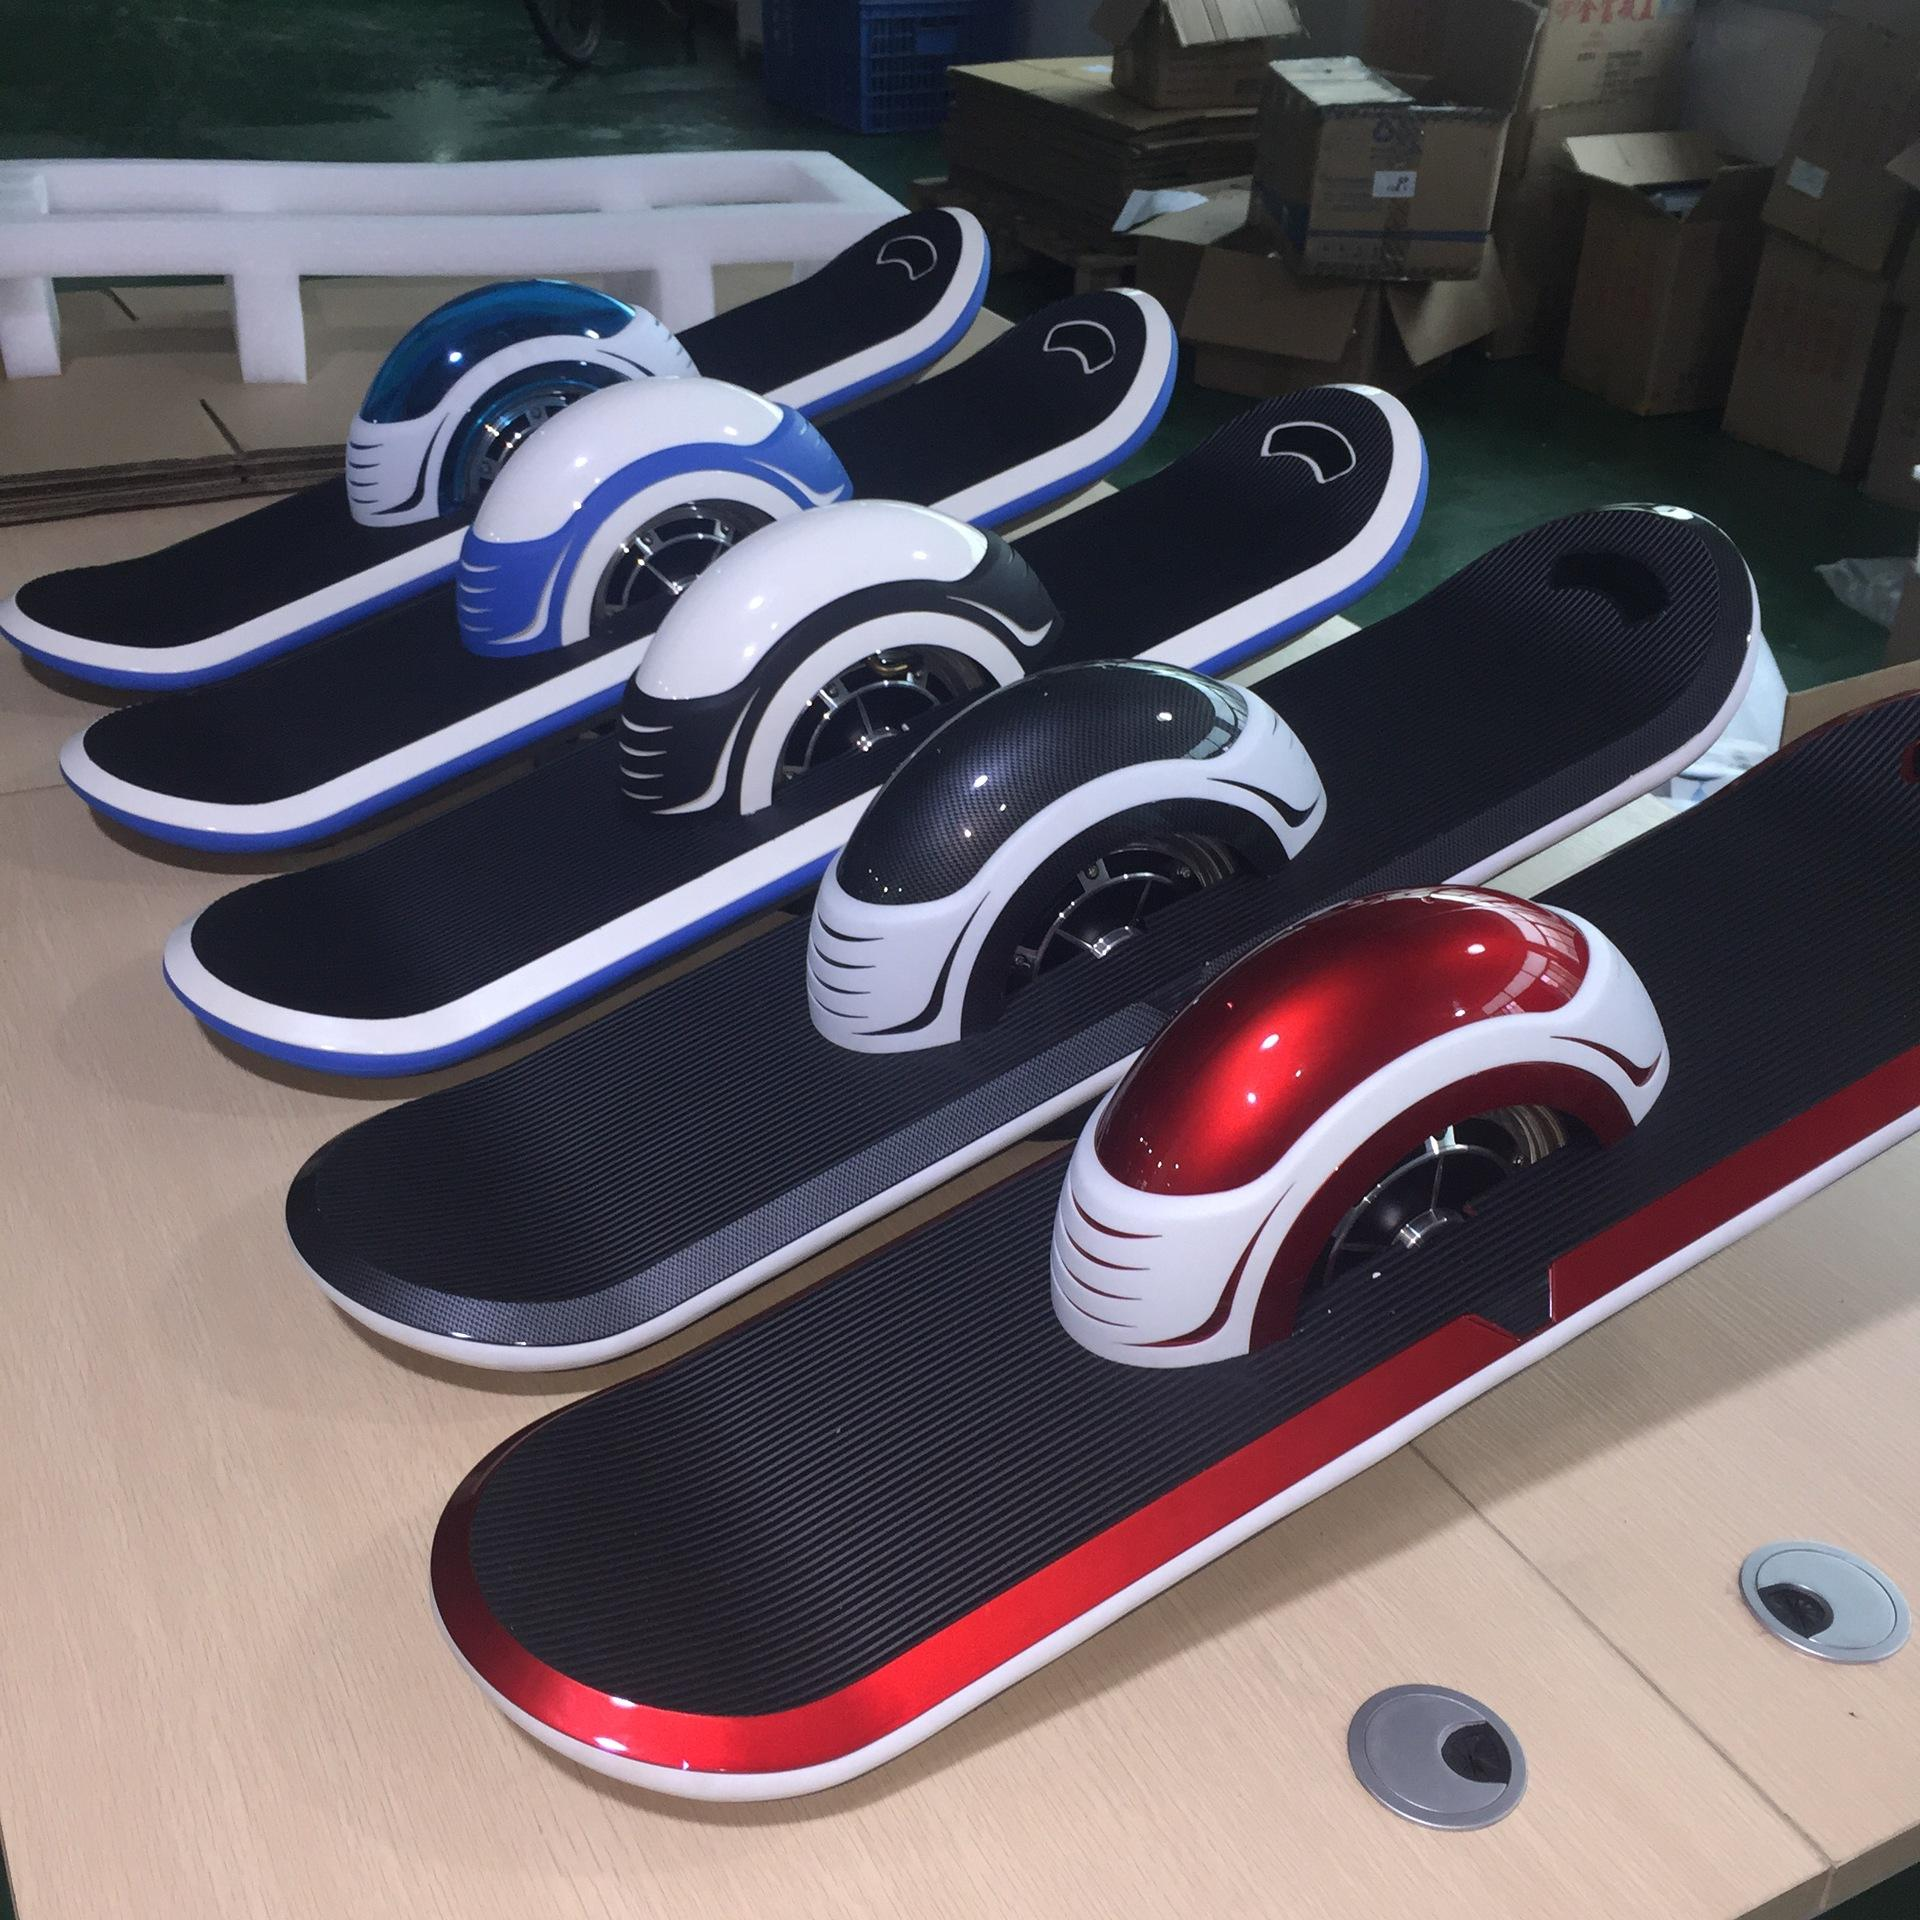 popular one wheel skateboard buy cheap one wheel skateboard lots from china one wheel skateboard. Black Bedroom Furniture Sets. Home Design Ideas